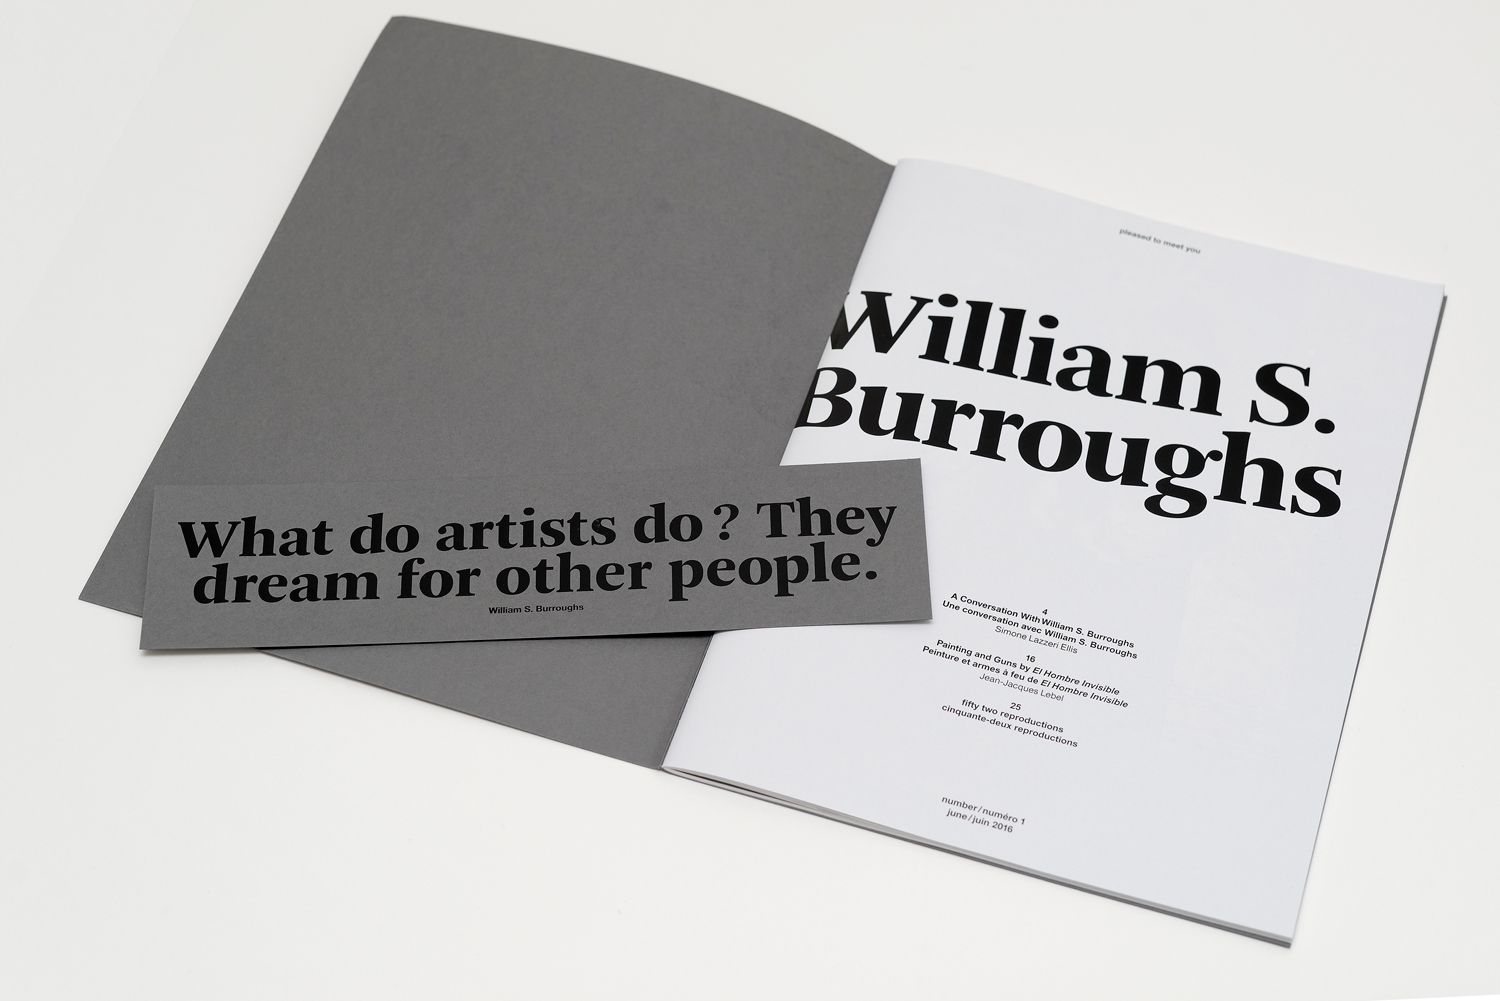 Pleased to meet you #1 - William S. Burroughs